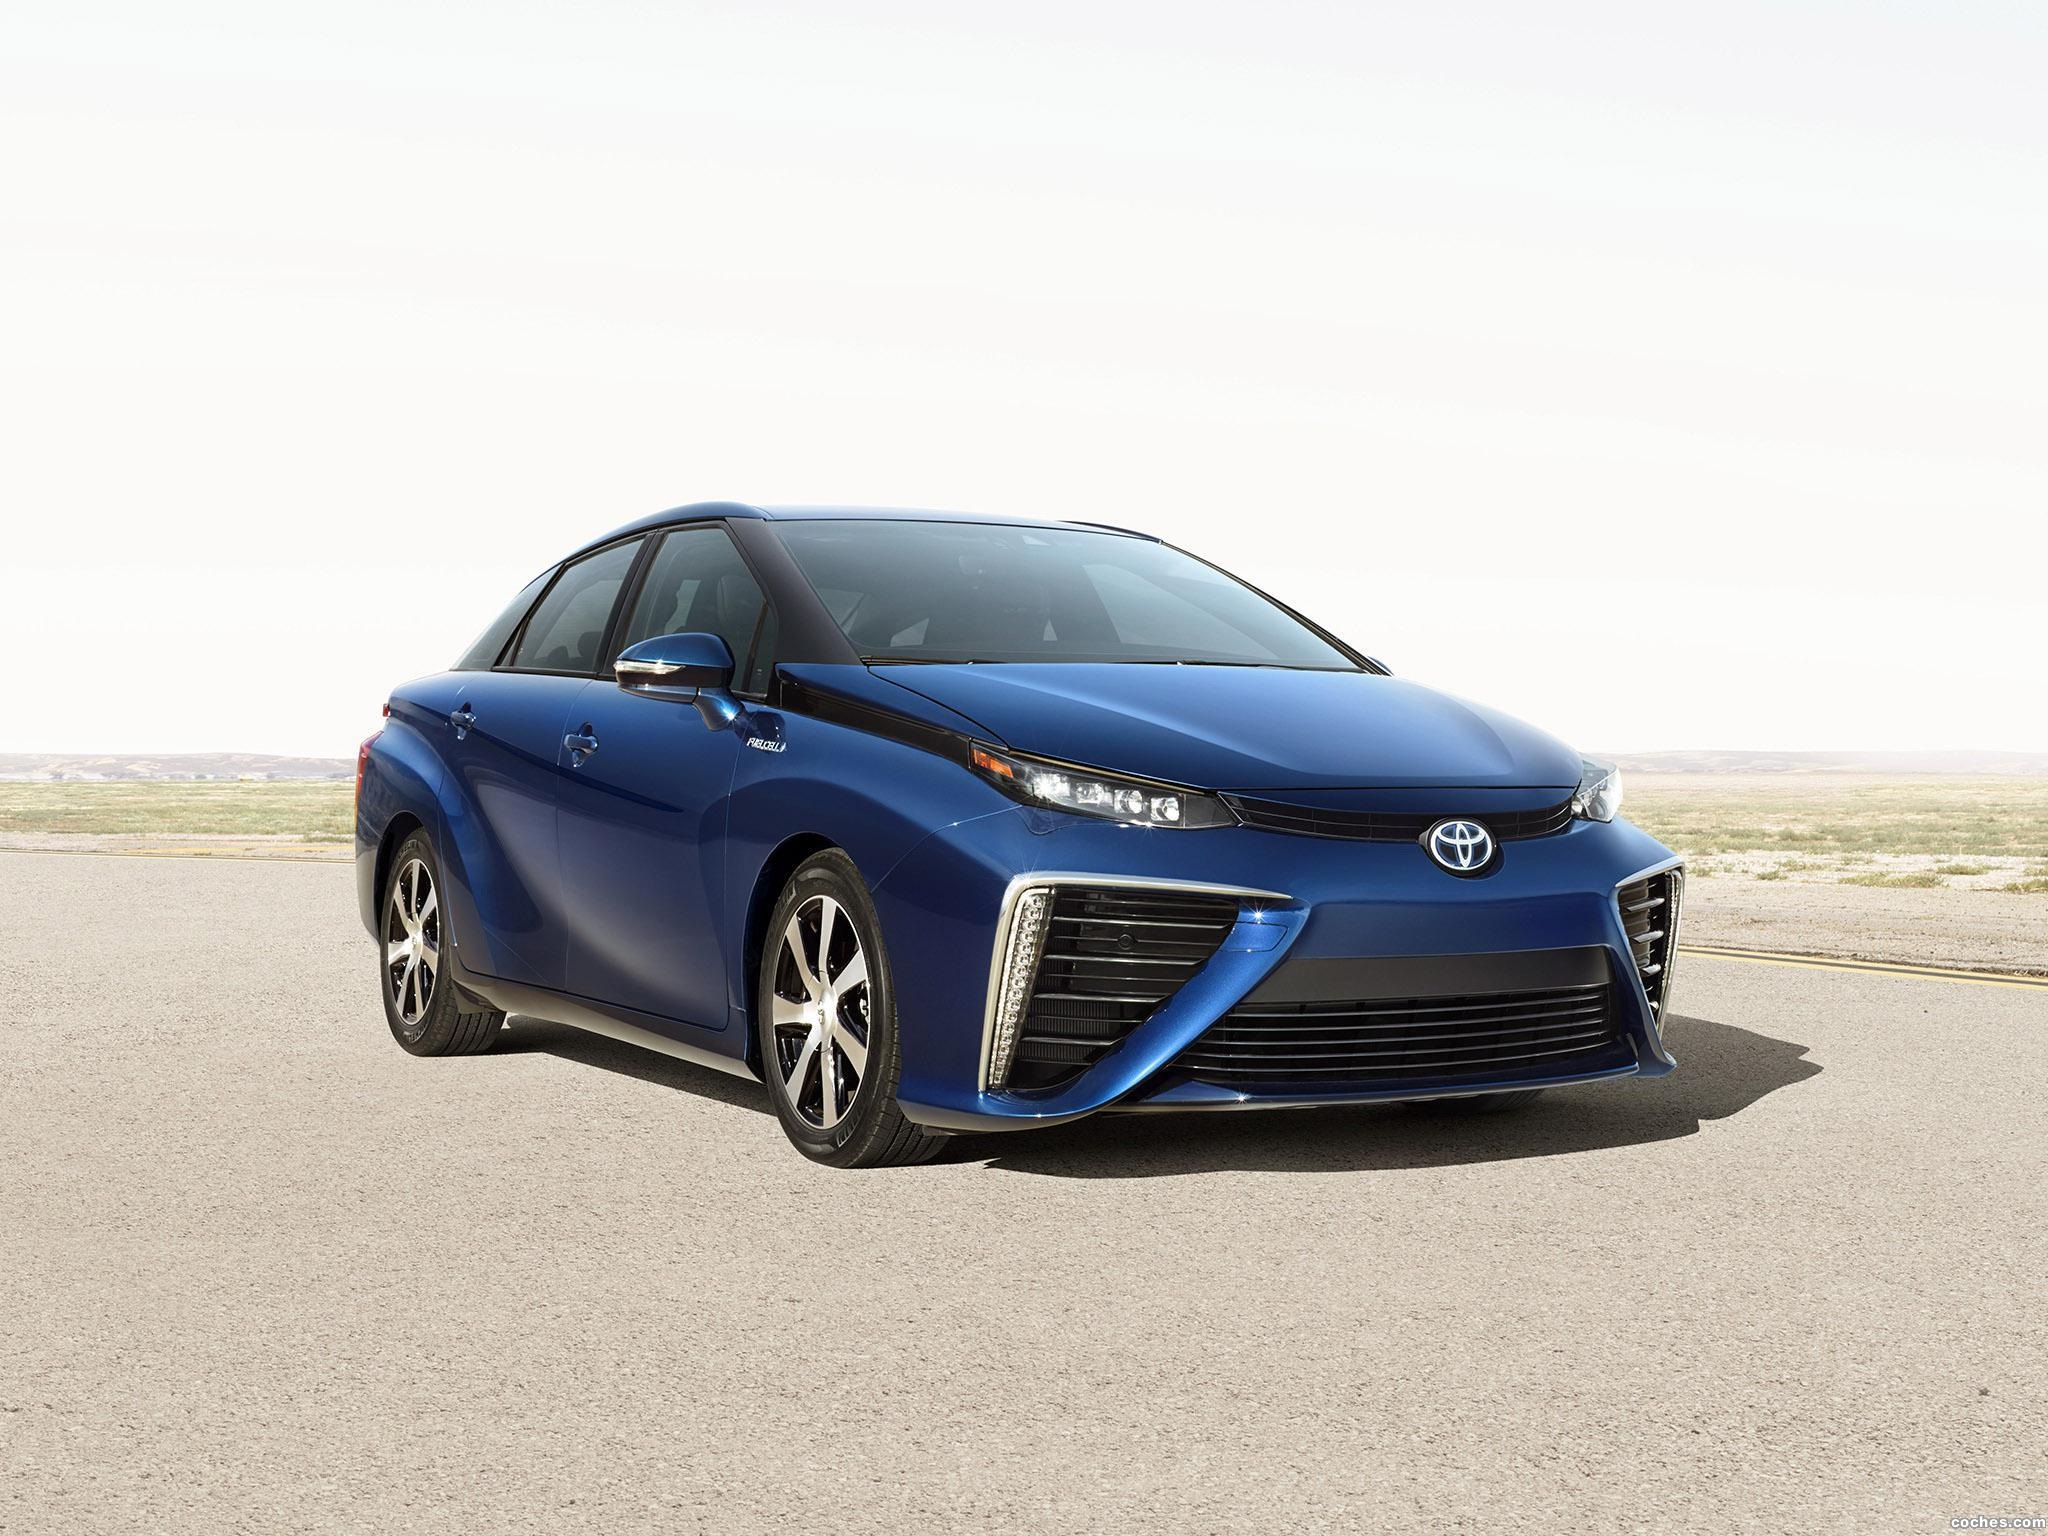 toyota_fcv-ms-fuelcells-2014_r3